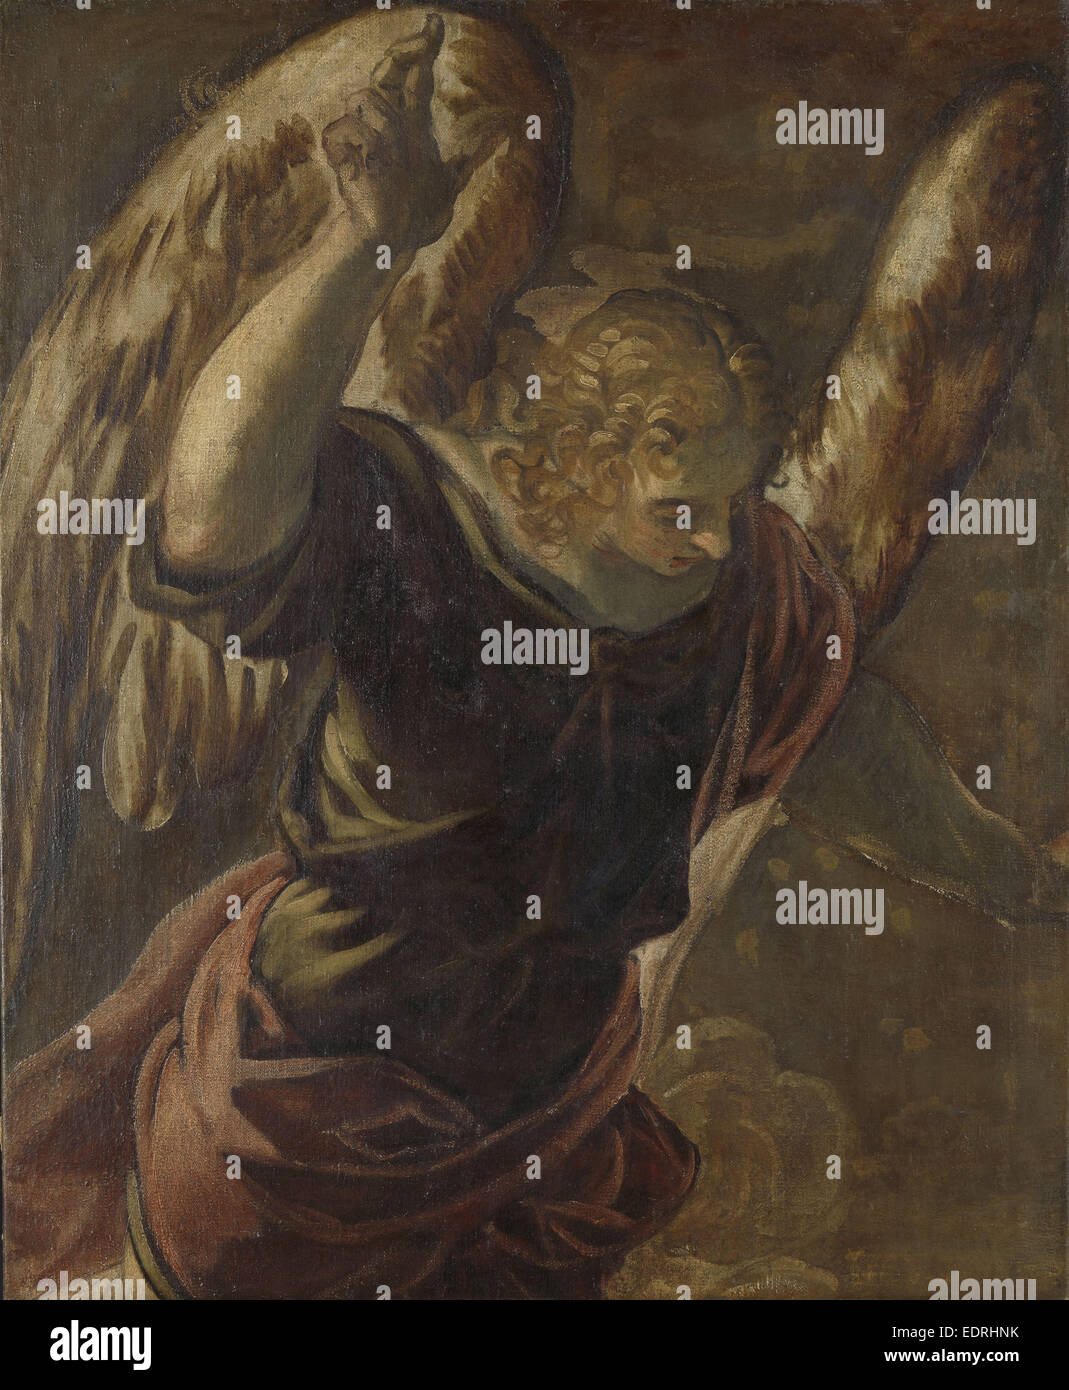 Angel from the Annunciation to the Virgin, Jacopo Tintoretto, 1560 - 1585 - Stock Image